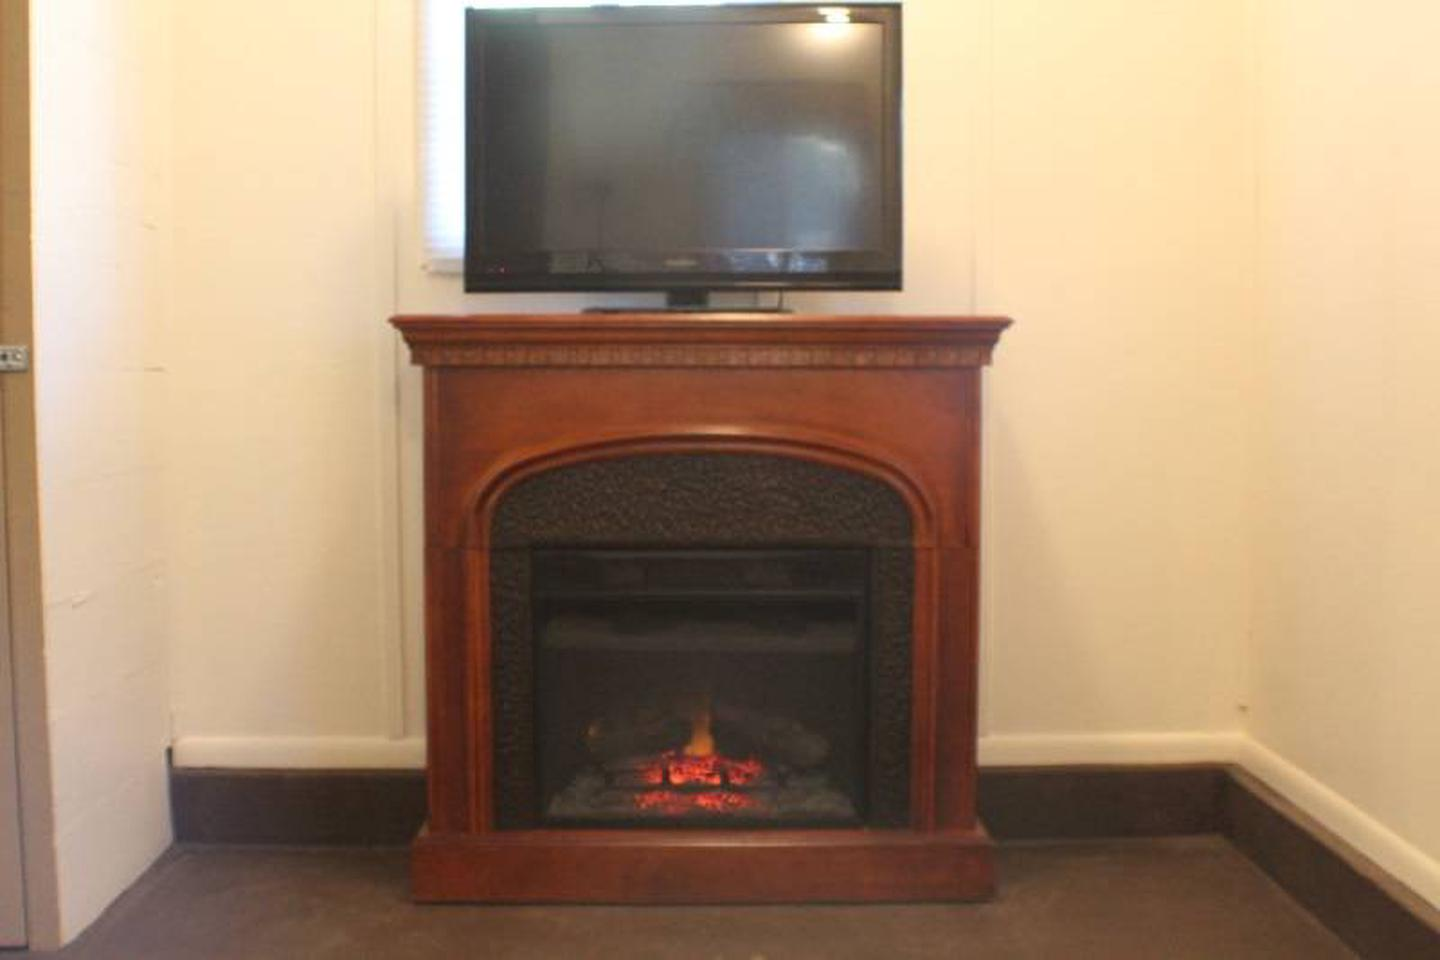 Electric Fireplace, TV w/DVD playerCabin 7: View to right of door showing electric fireplace, TV with DVD player.